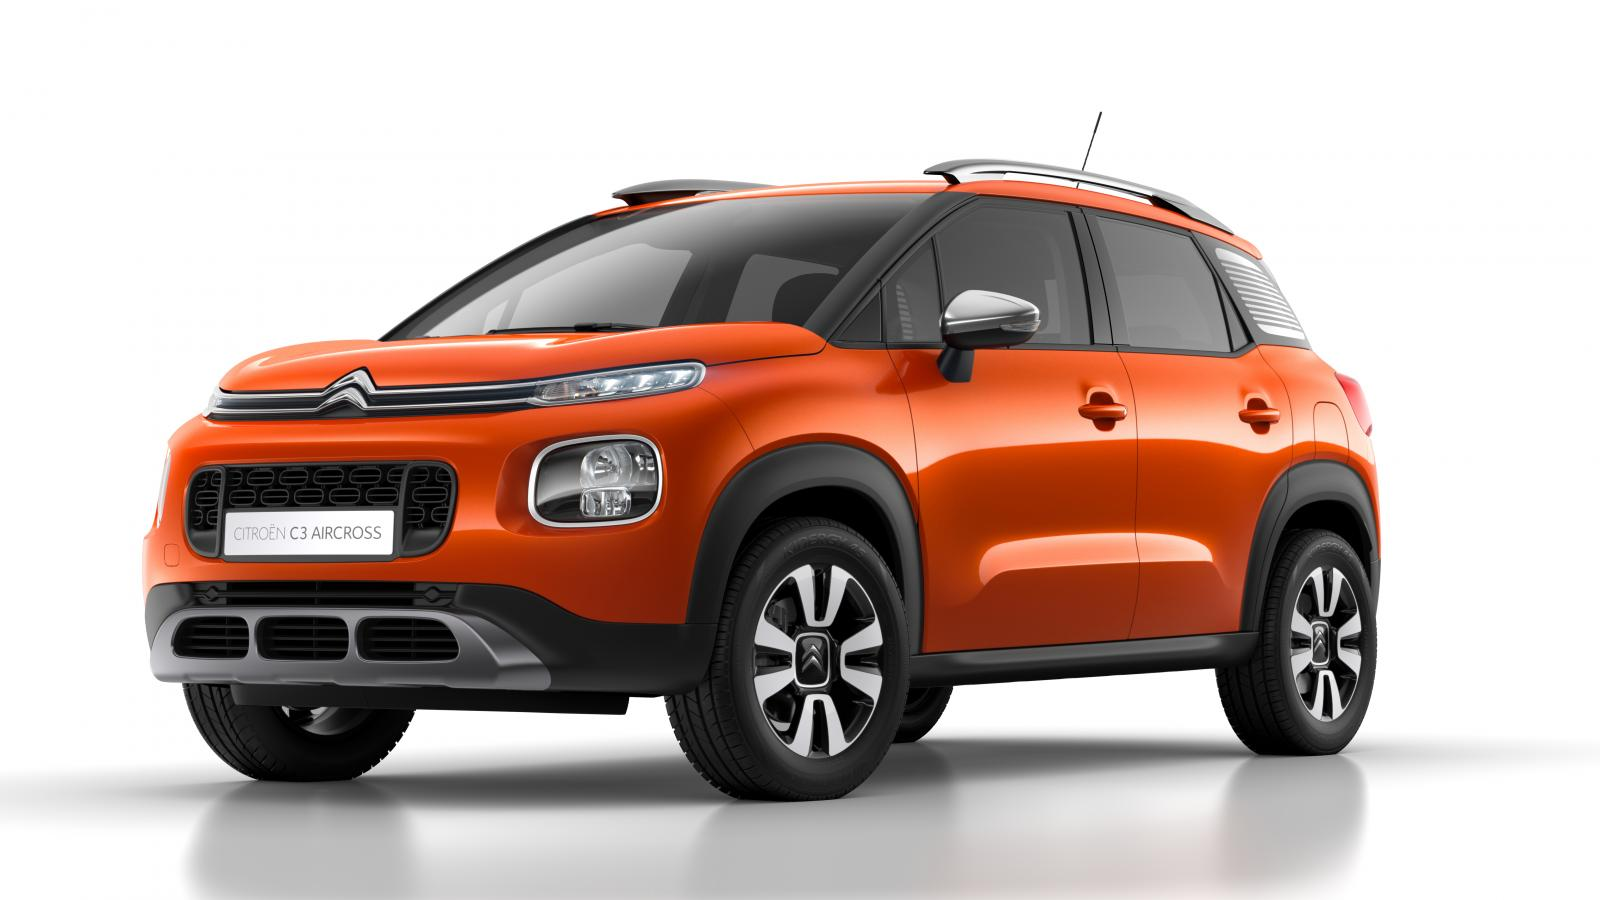 C3 Aircross Compact SUV- Spicy Orange